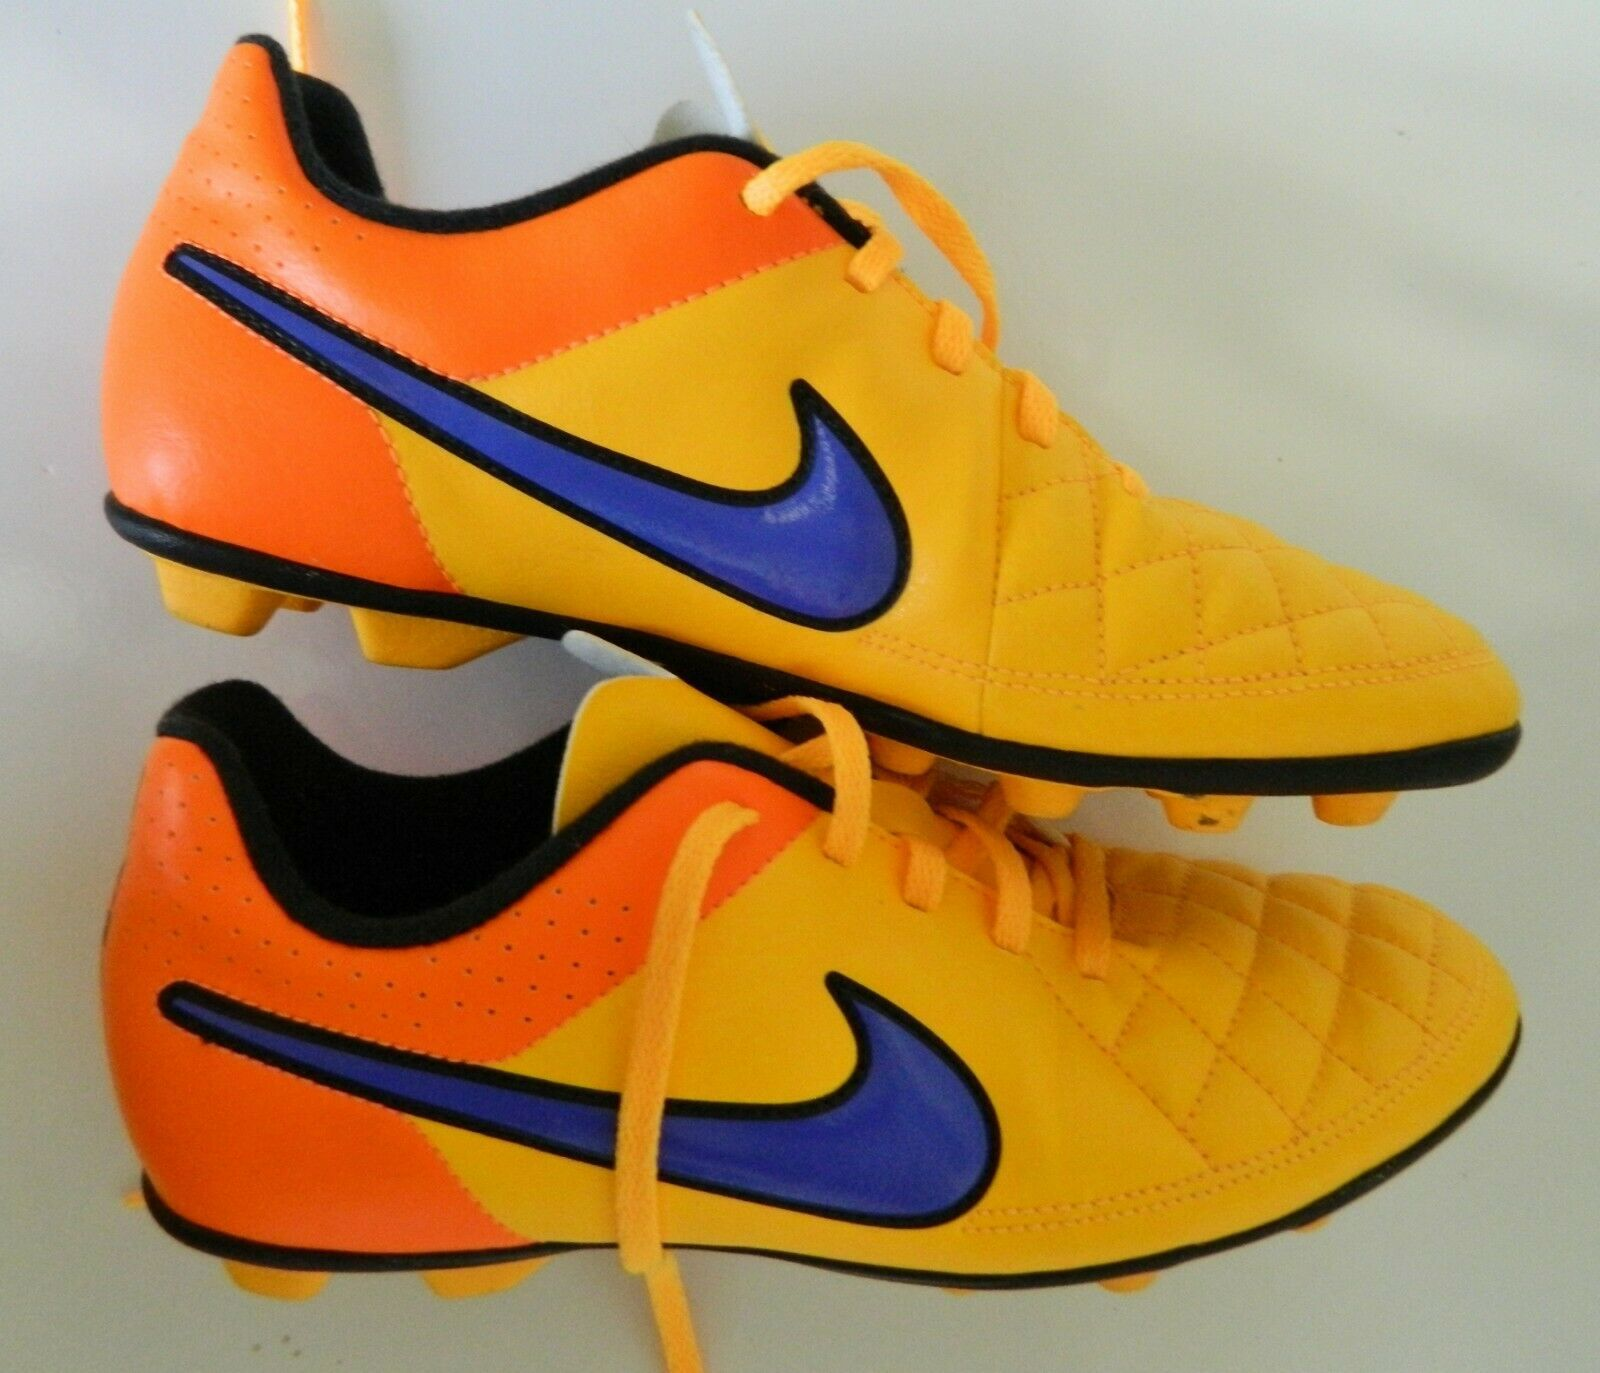 Primary image for Nike Tiempo Legend V Men's Cleats Yellow/Orange/Purple US Size 5.5